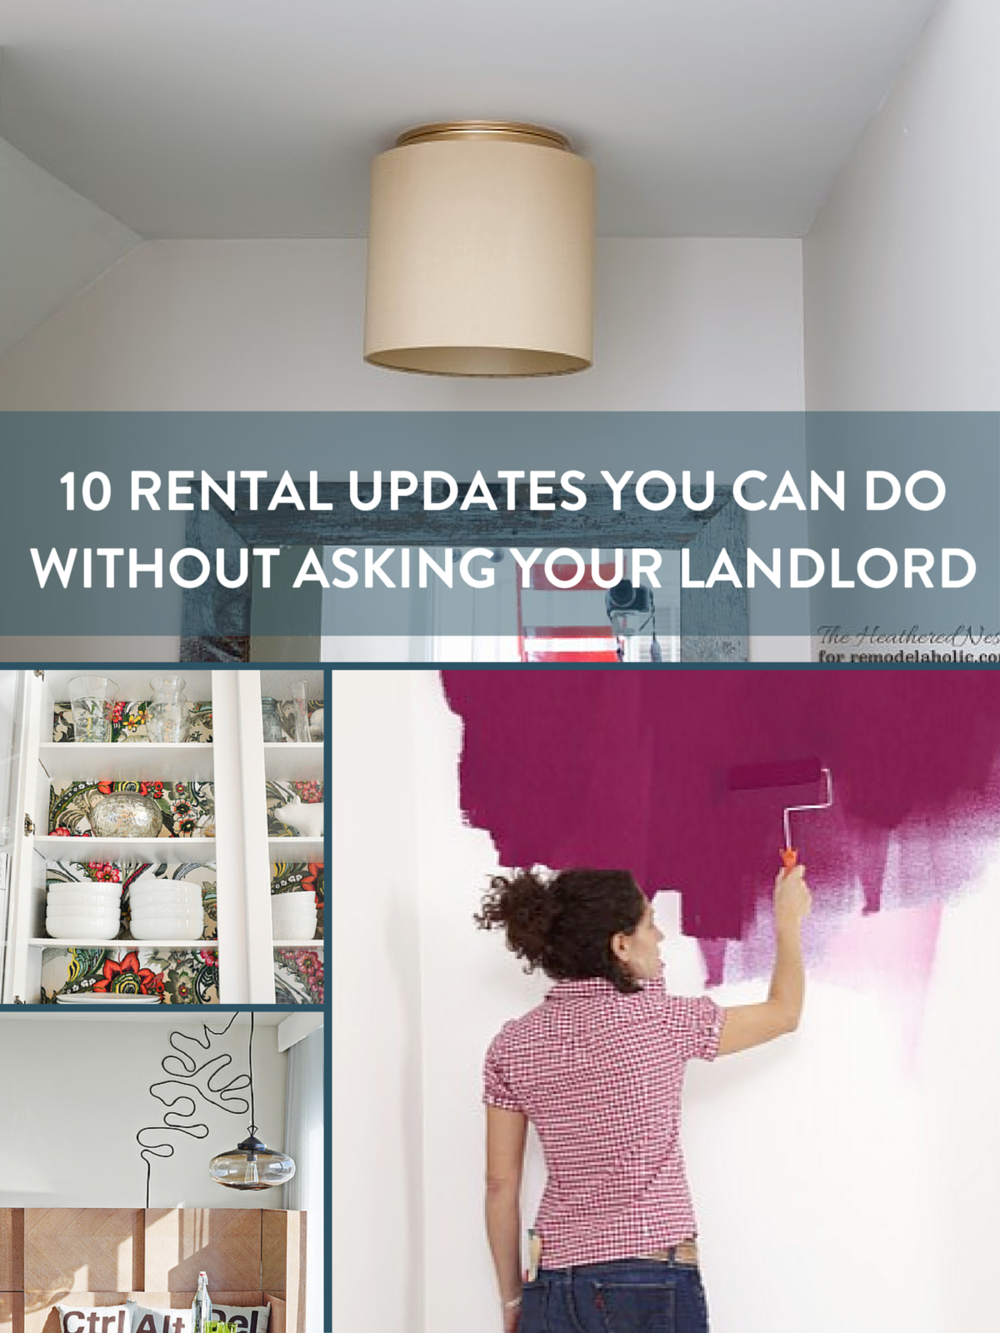 You Can Do It 10 Rental Updates Your Landlord Doesn T Need To